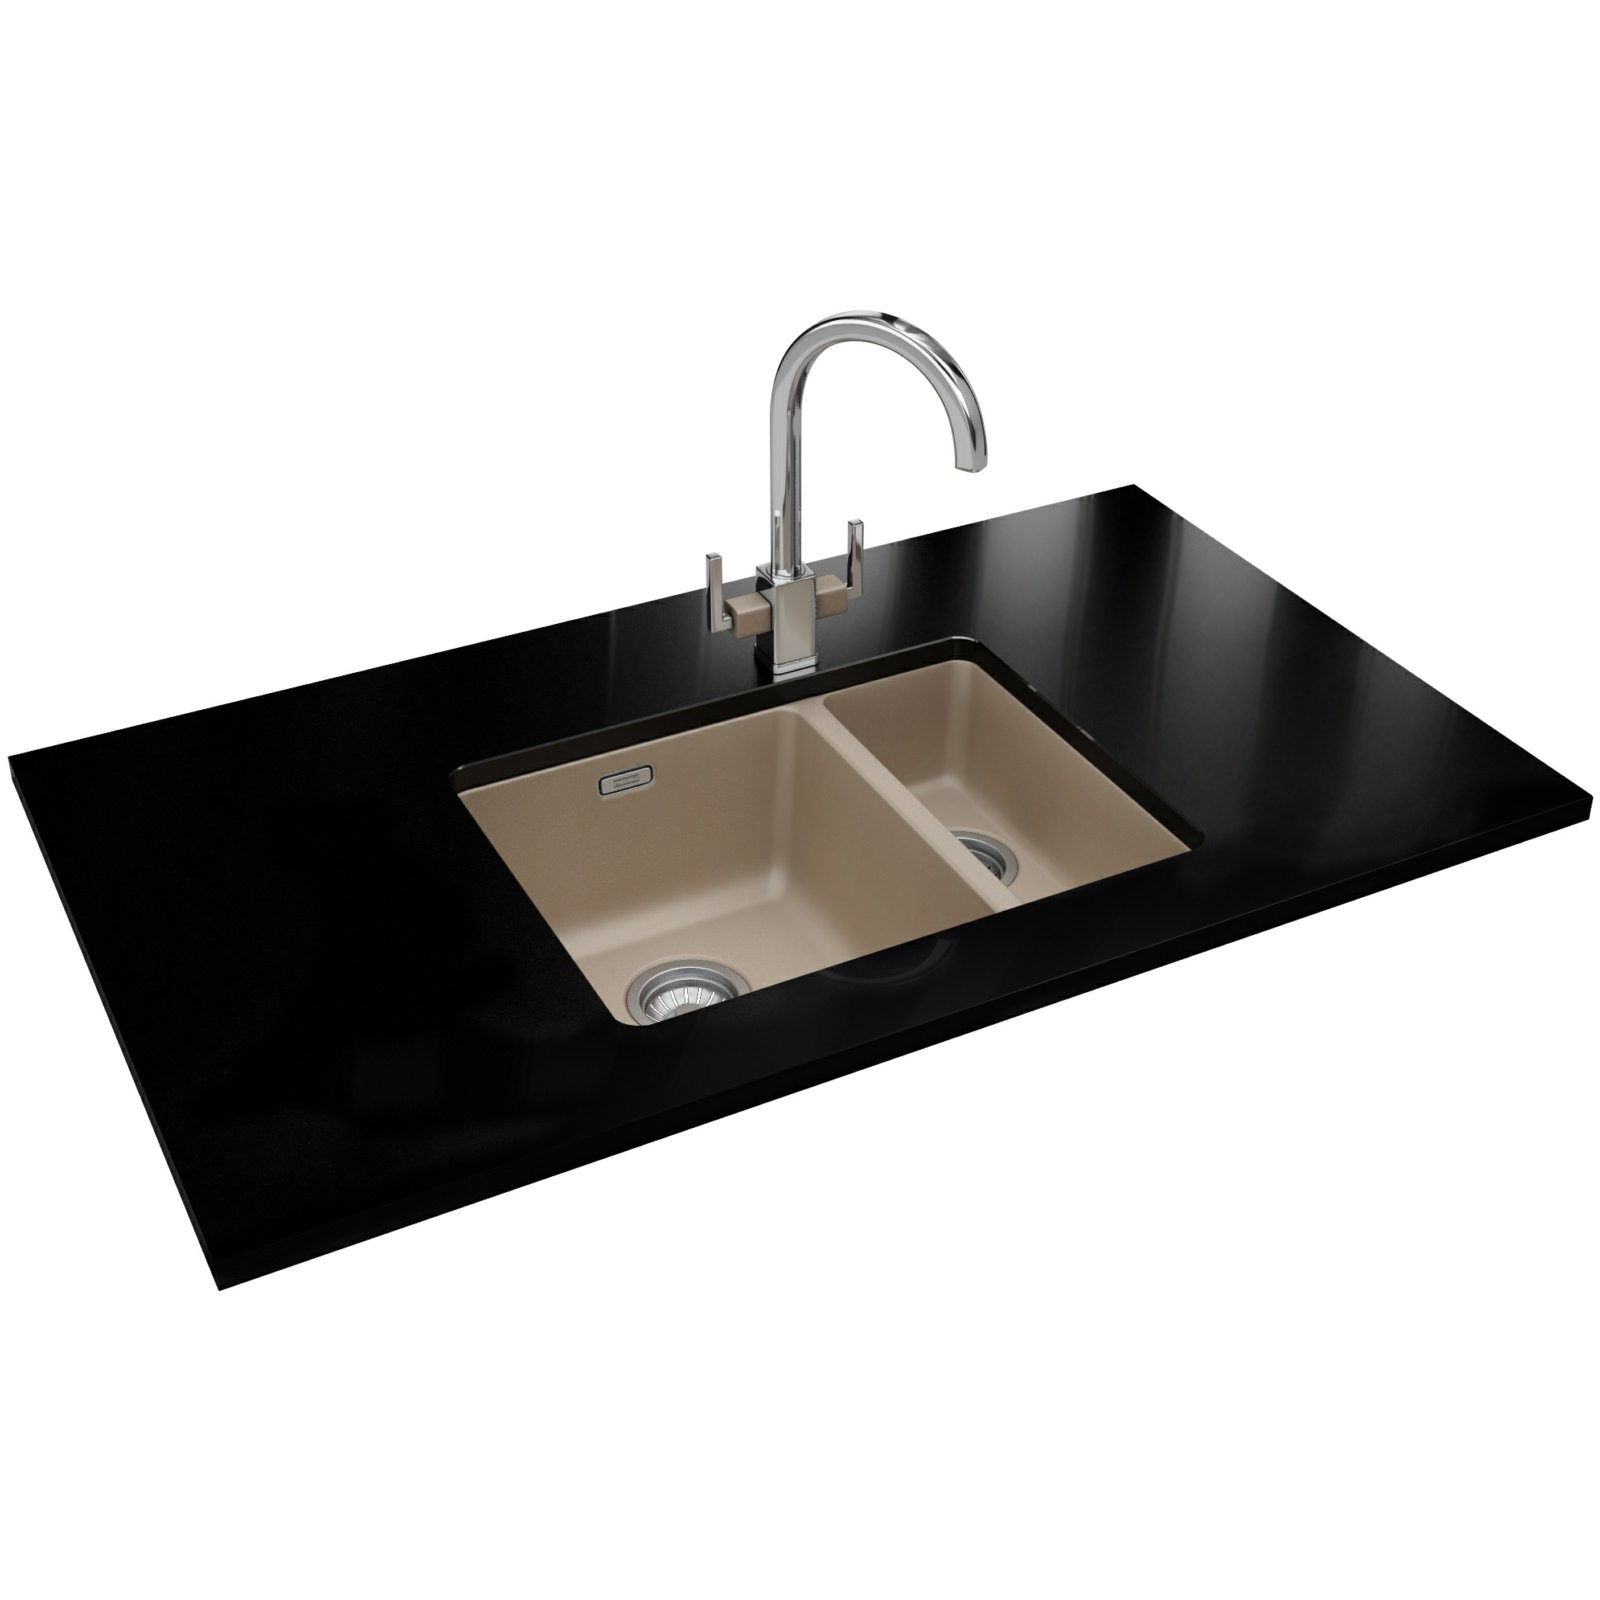 Franke Fragranite Undermount Sink : Franke Kubus KBG 160 Fragranite Coffee 1.5 Bowl Undermount Sink 125 ...